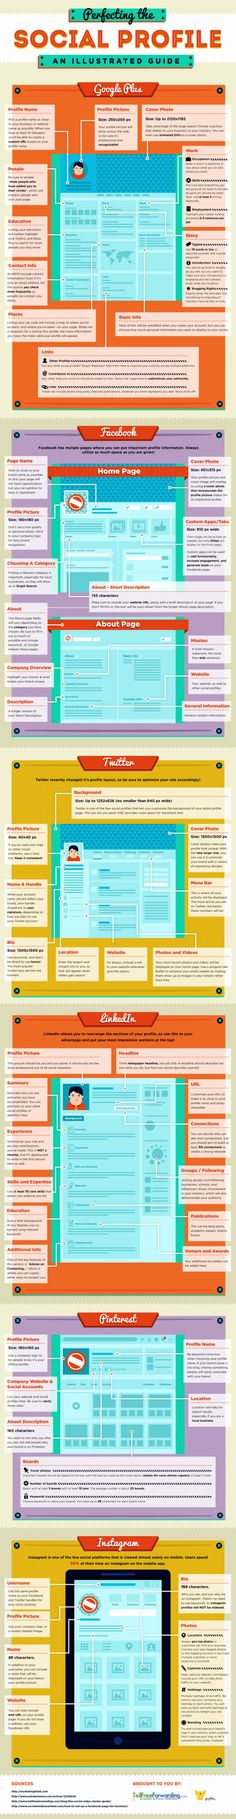 The elements of great social media profiles